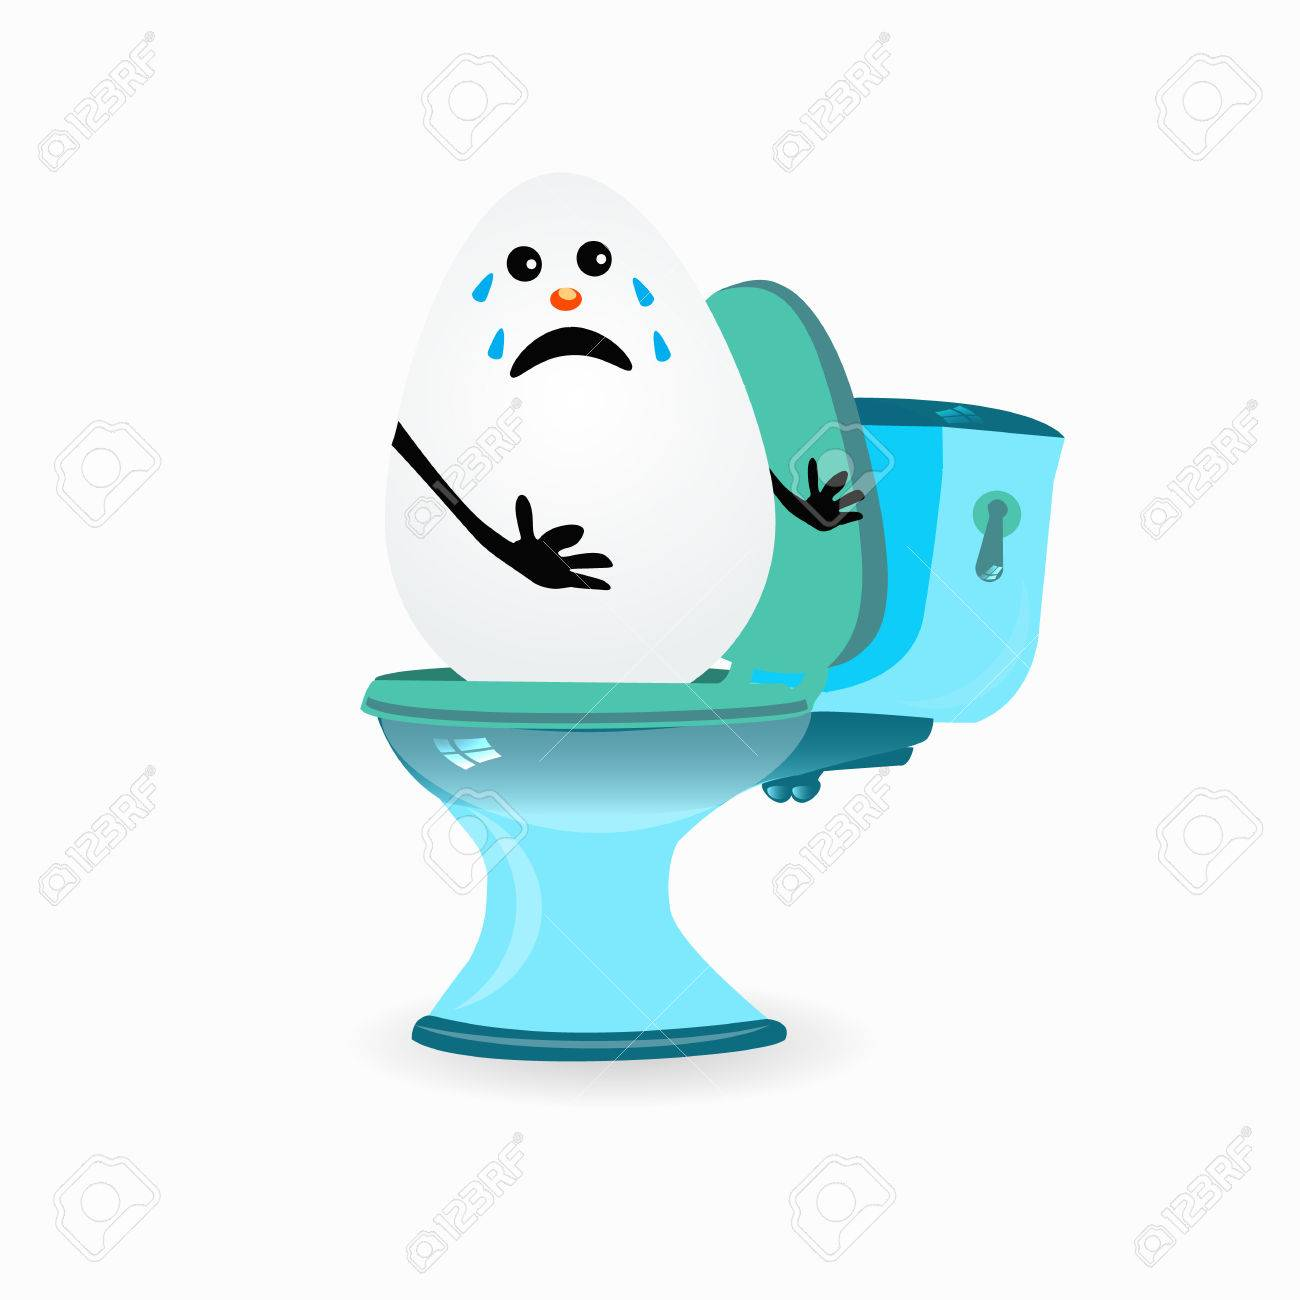 Incredible Constipation Concept Funny Egg Cries Sitting On The Toilet Bralicious Painted Fabric Chair Ideas Braliciousco